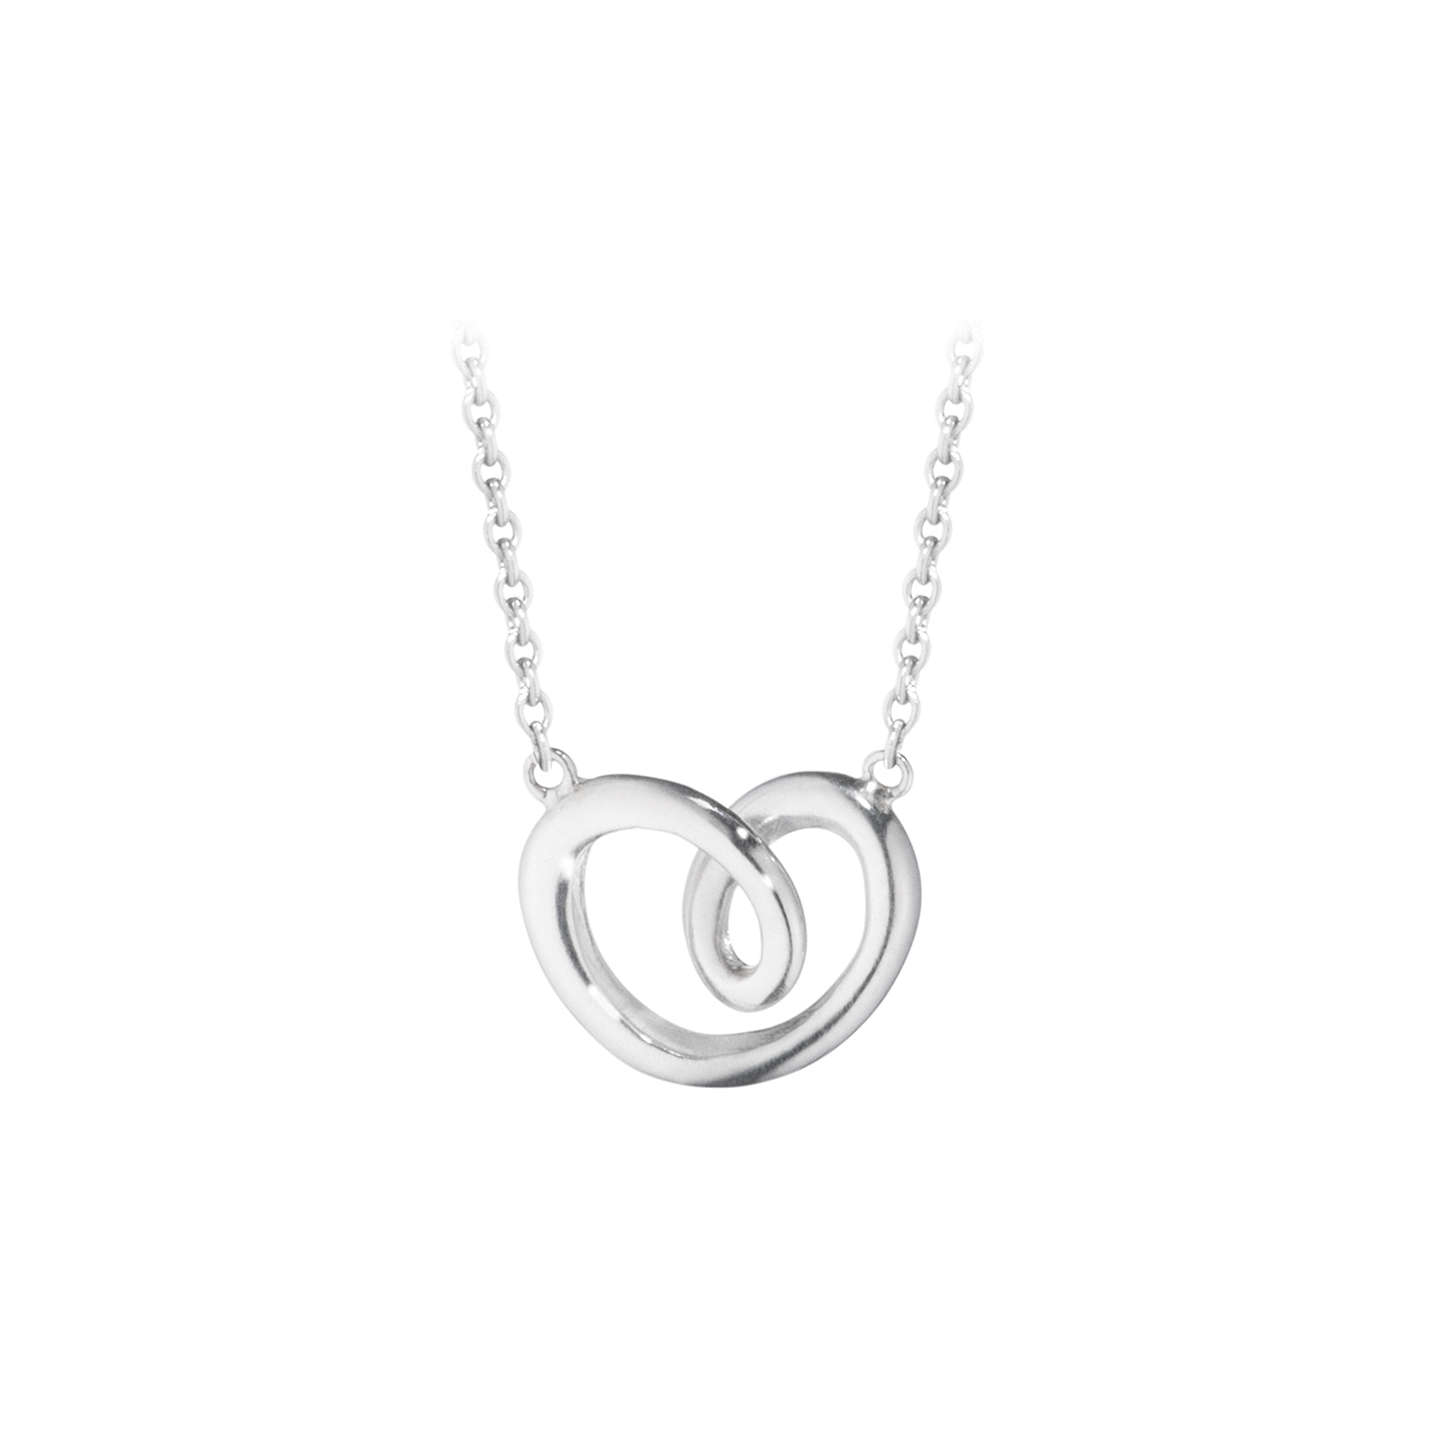 Georg jensen looped heart pendant necklace silver at john lewis buygeorg jensen looped heart pendant necklace silver online at johnlewis mozeypictures Gallery